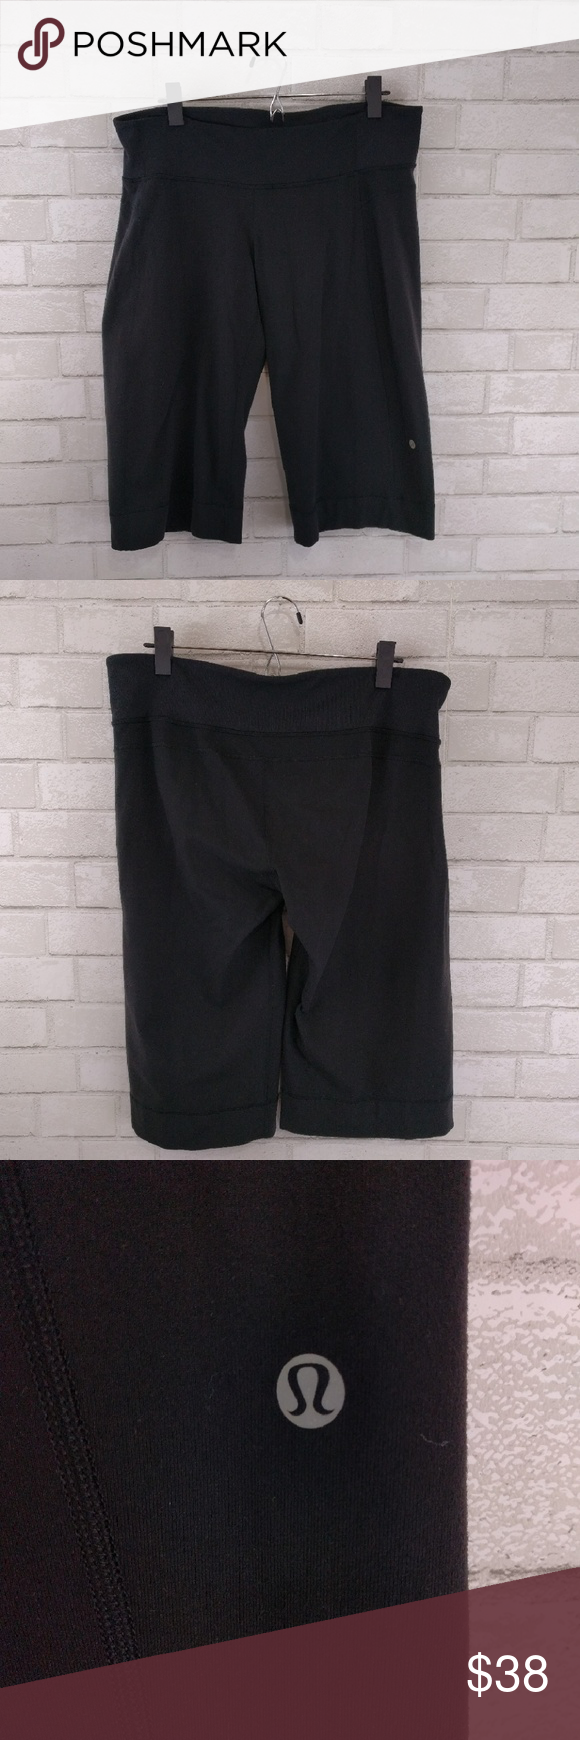 """Lululemon Crop Athletic Yoga Tights Excellent condition no damages. Waist 34"""" thigh 20"""" length 24"""". Pet and smoke free home. lululemon athletica Pants Leggings"""